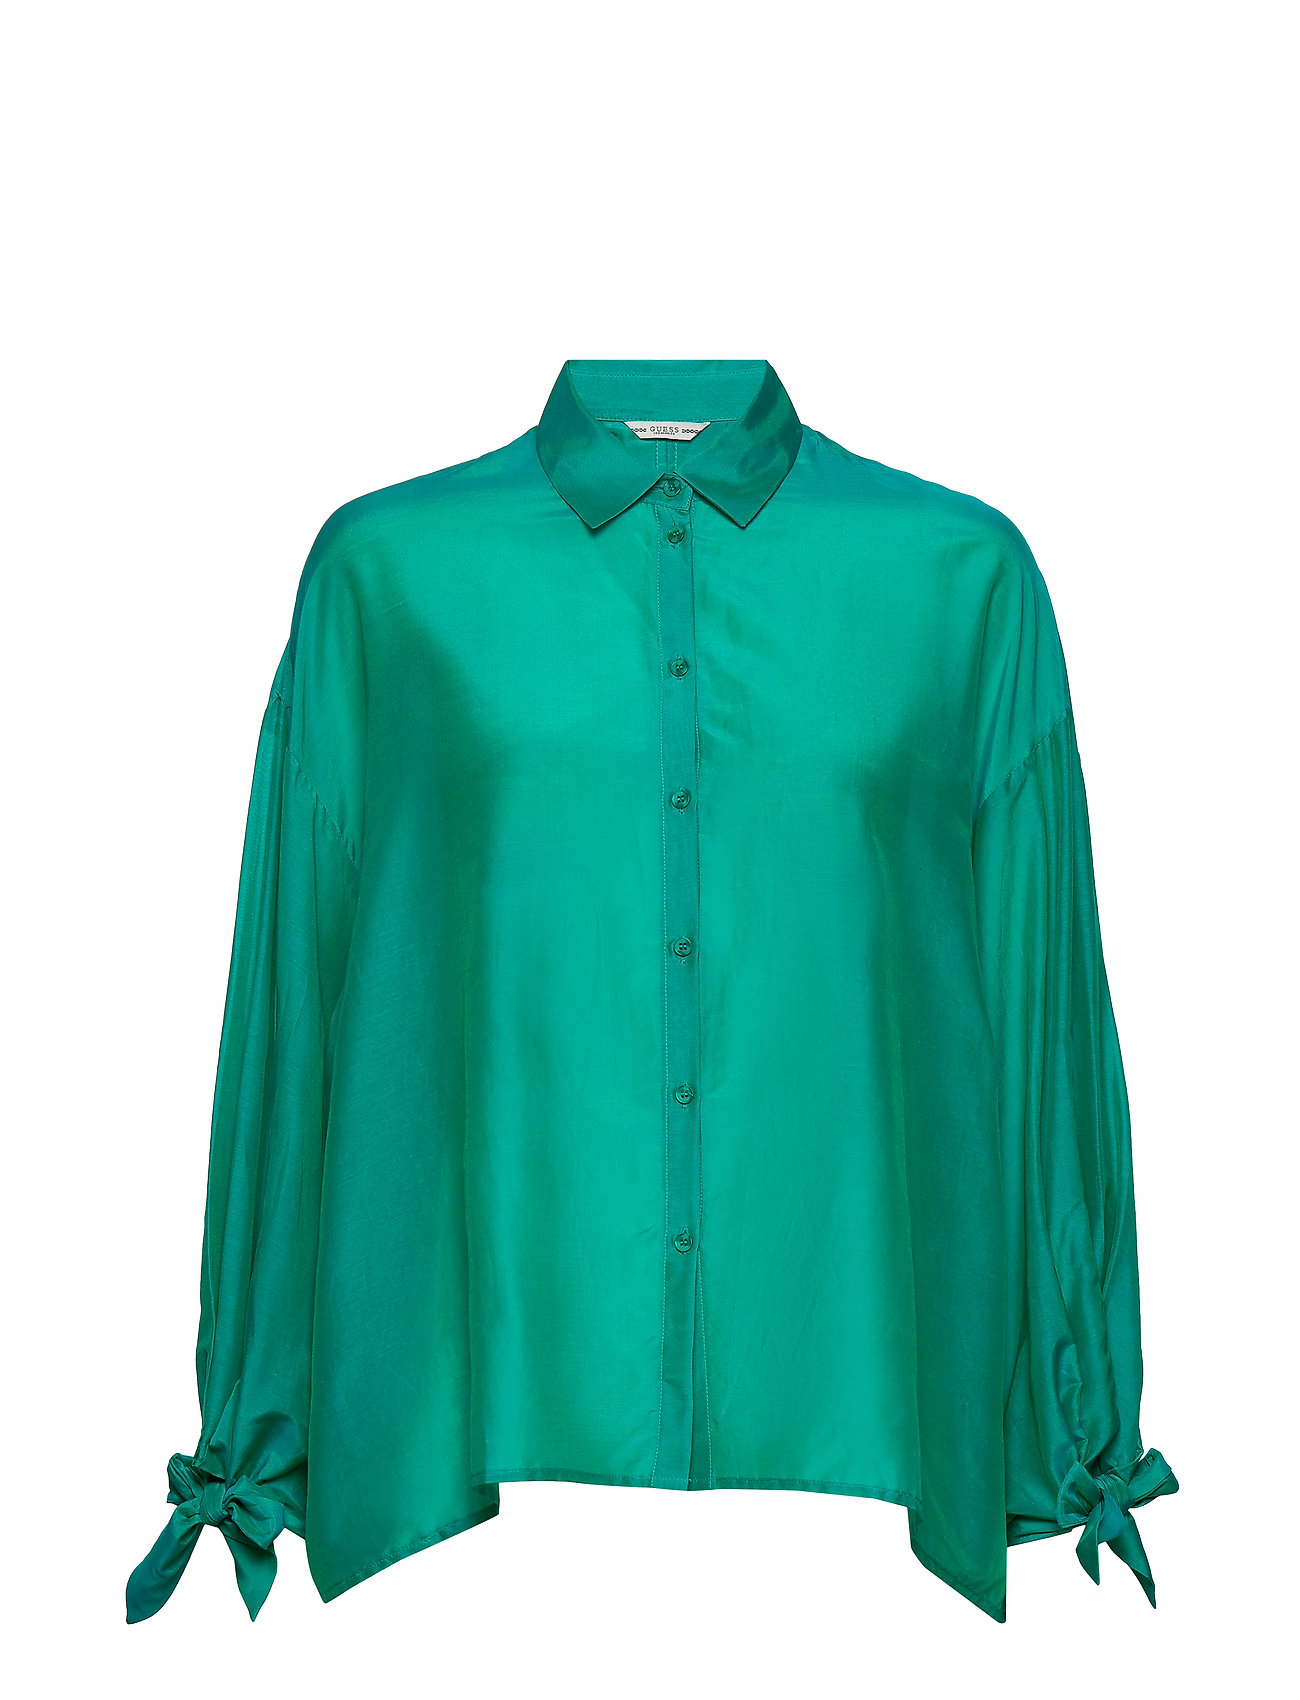 GUESS Jeans LS MARISA SHIRT - BEVERLY GREEN